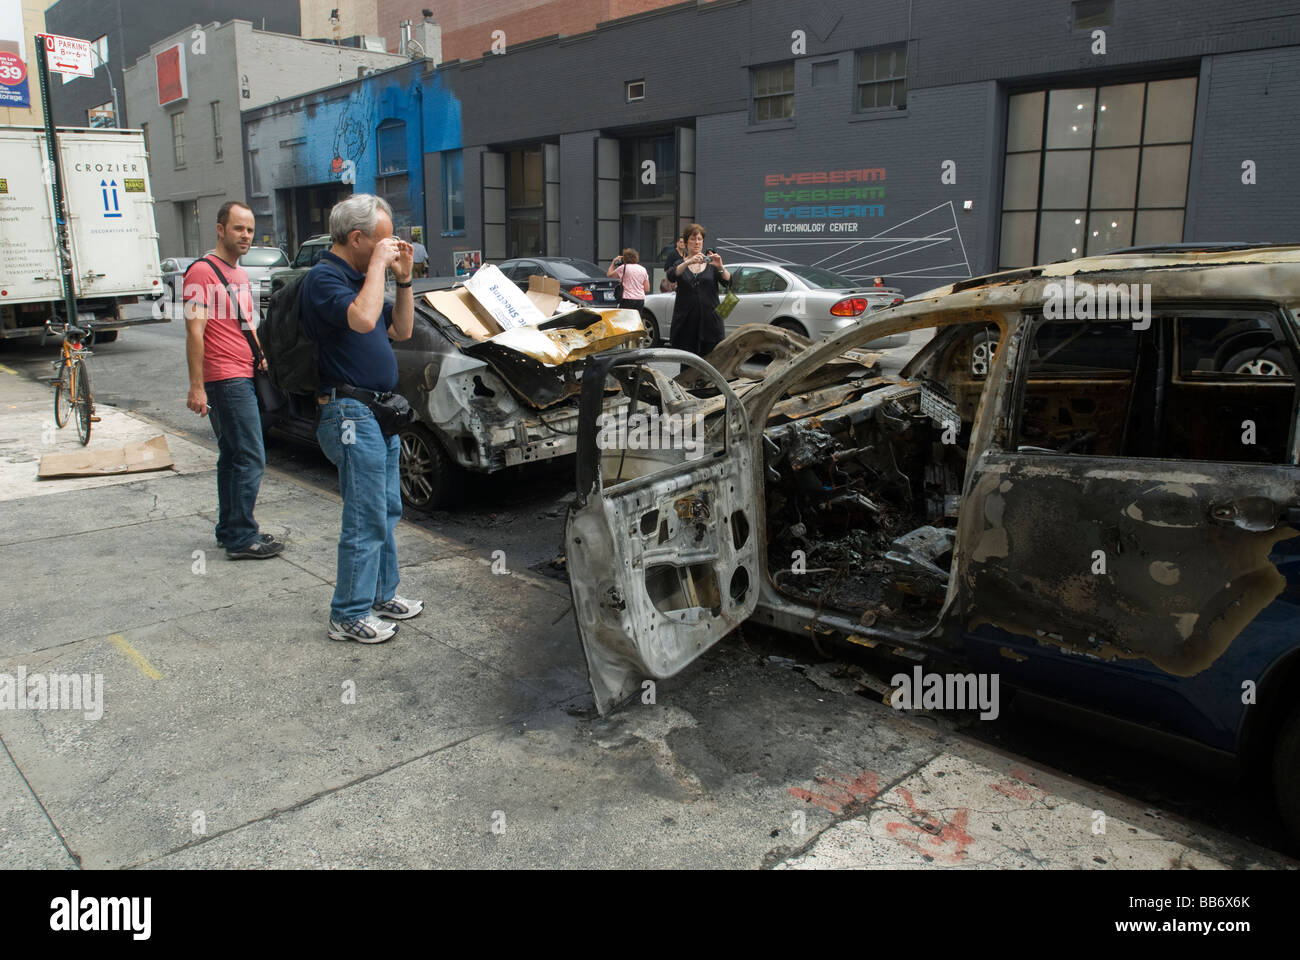 Automobiles burnt after an accident are seen on a street in the trendy West Chelsea gallery district in New York - Stock Image